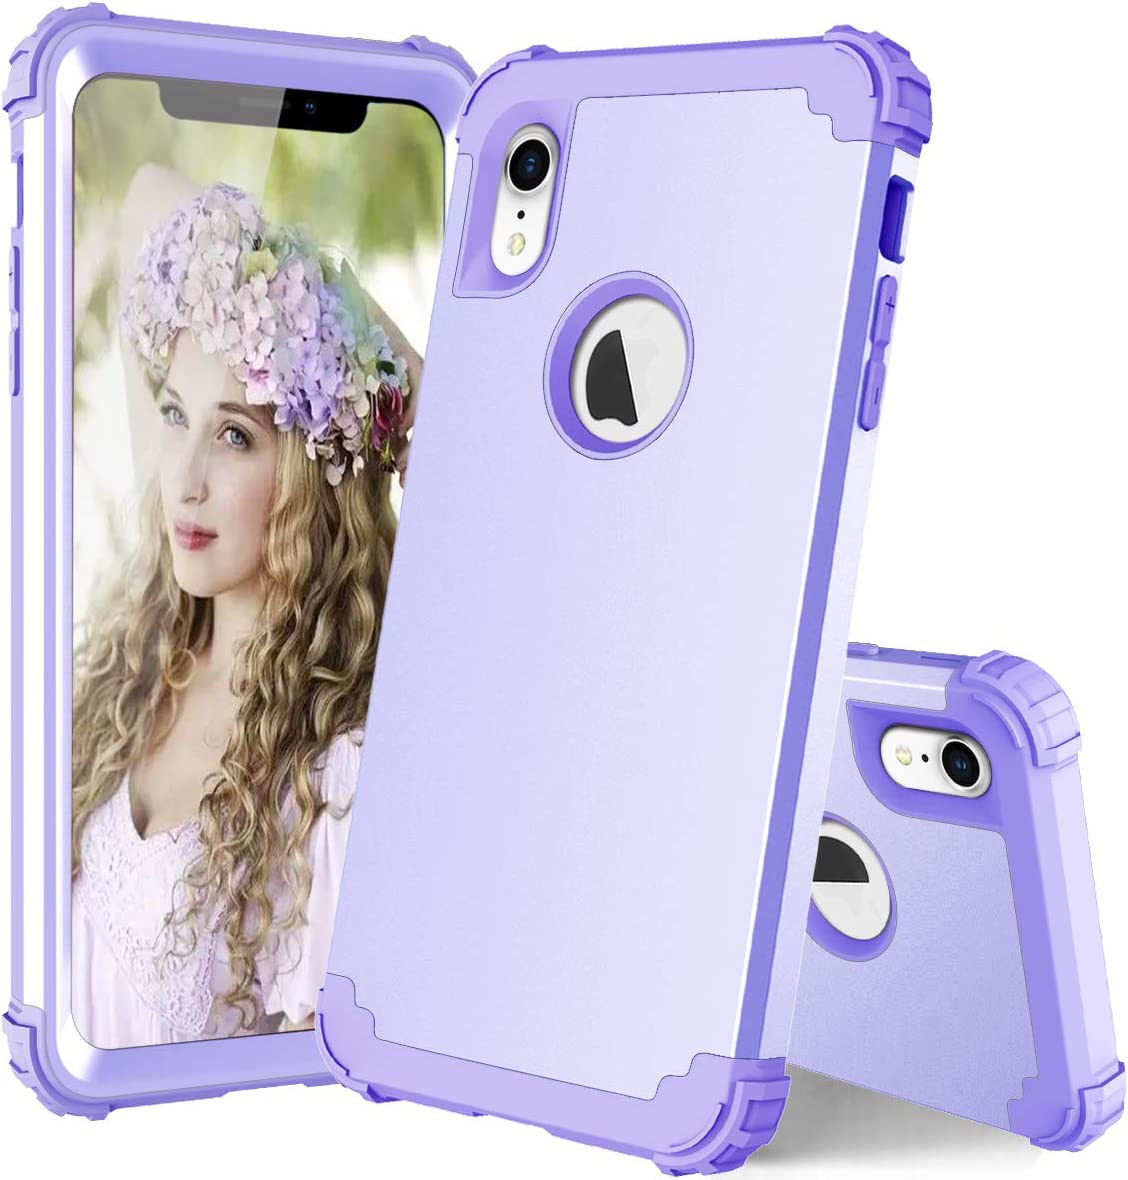 Phone Case for iPhone XR Hard Cover Shockproof Soft Silicone Hybrid Heavy Duty Protective Cell Accessories iPhoneXR iPhone10R i Phonex 10XR 10R 10 R RX CR iPhoneXRcases Cases Women Girl Purple